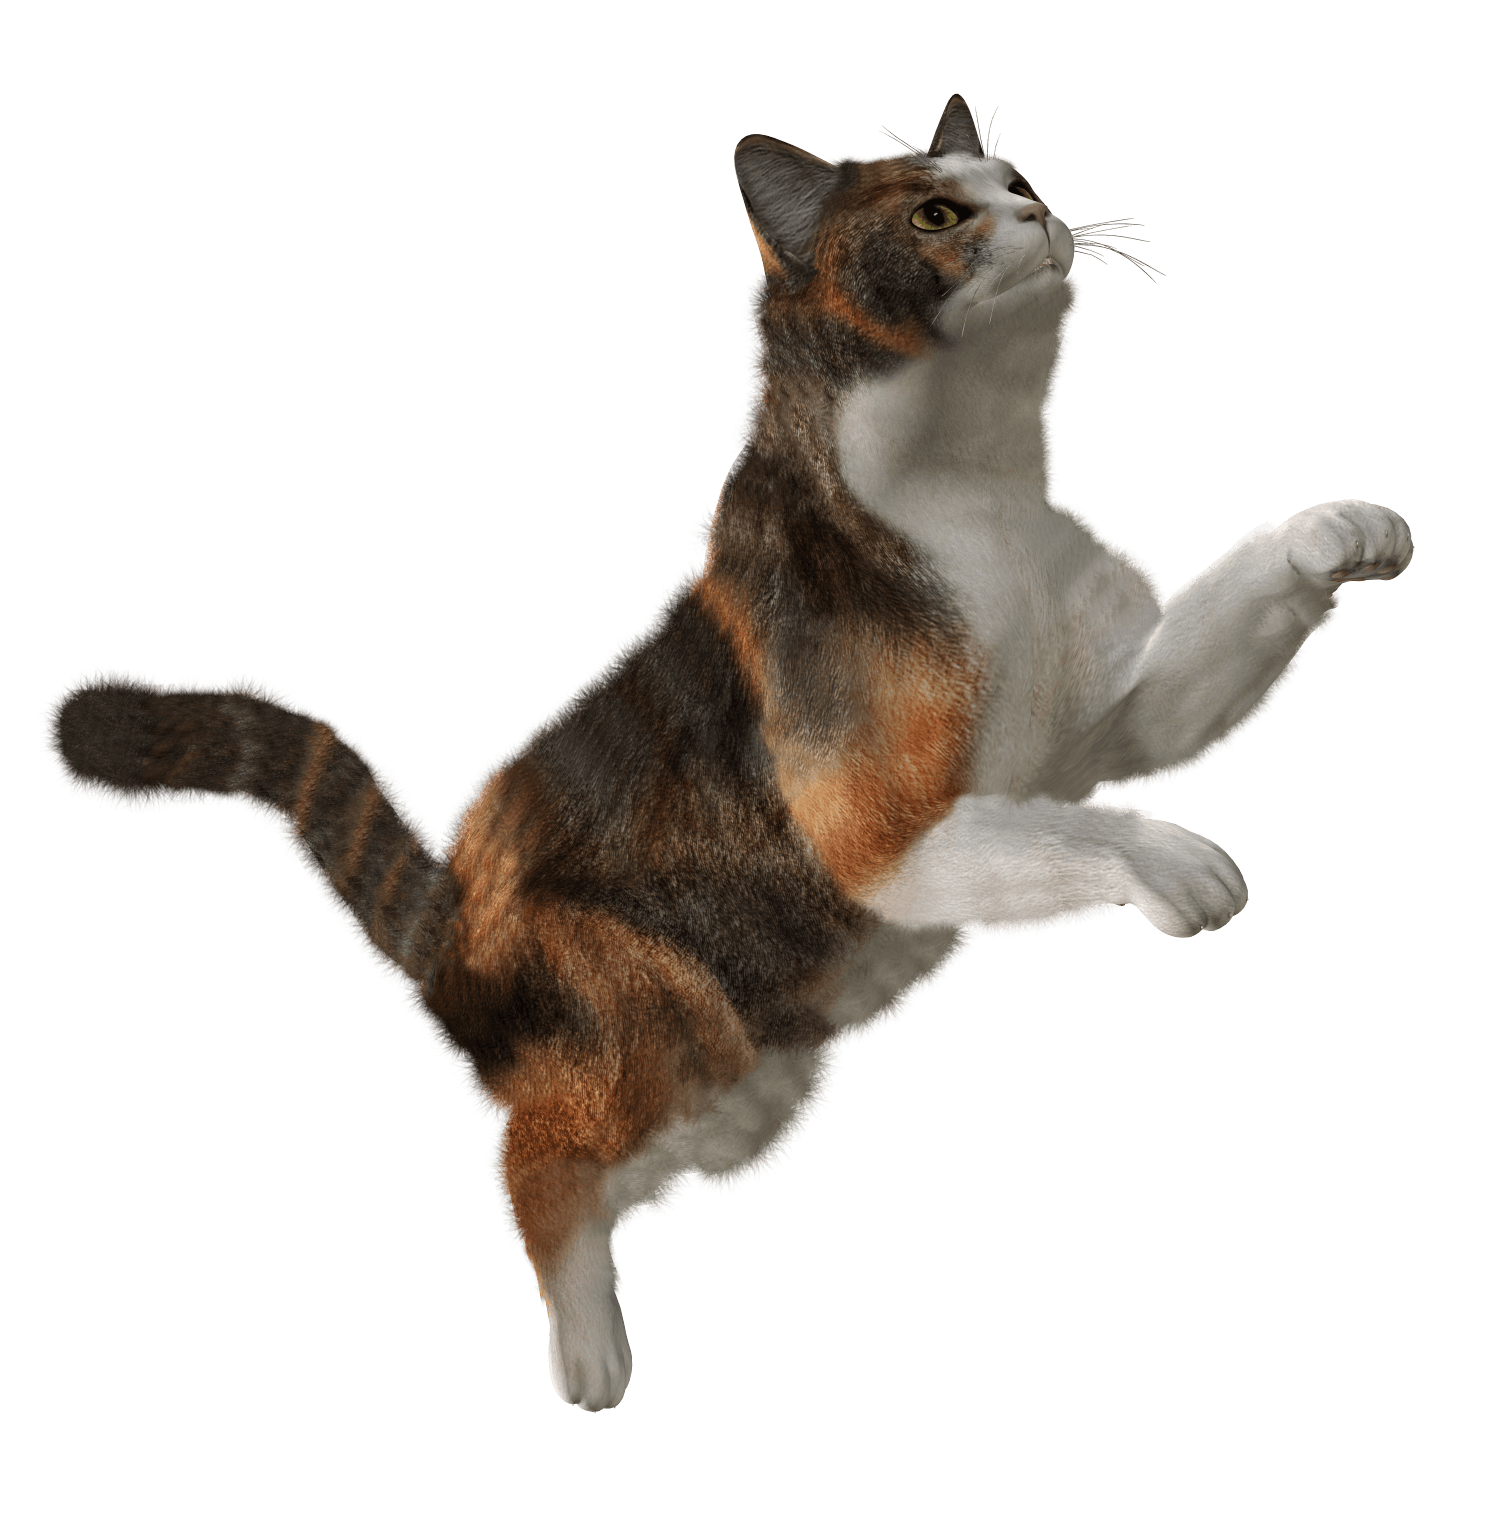 Jumping cat png. Cute image download picture